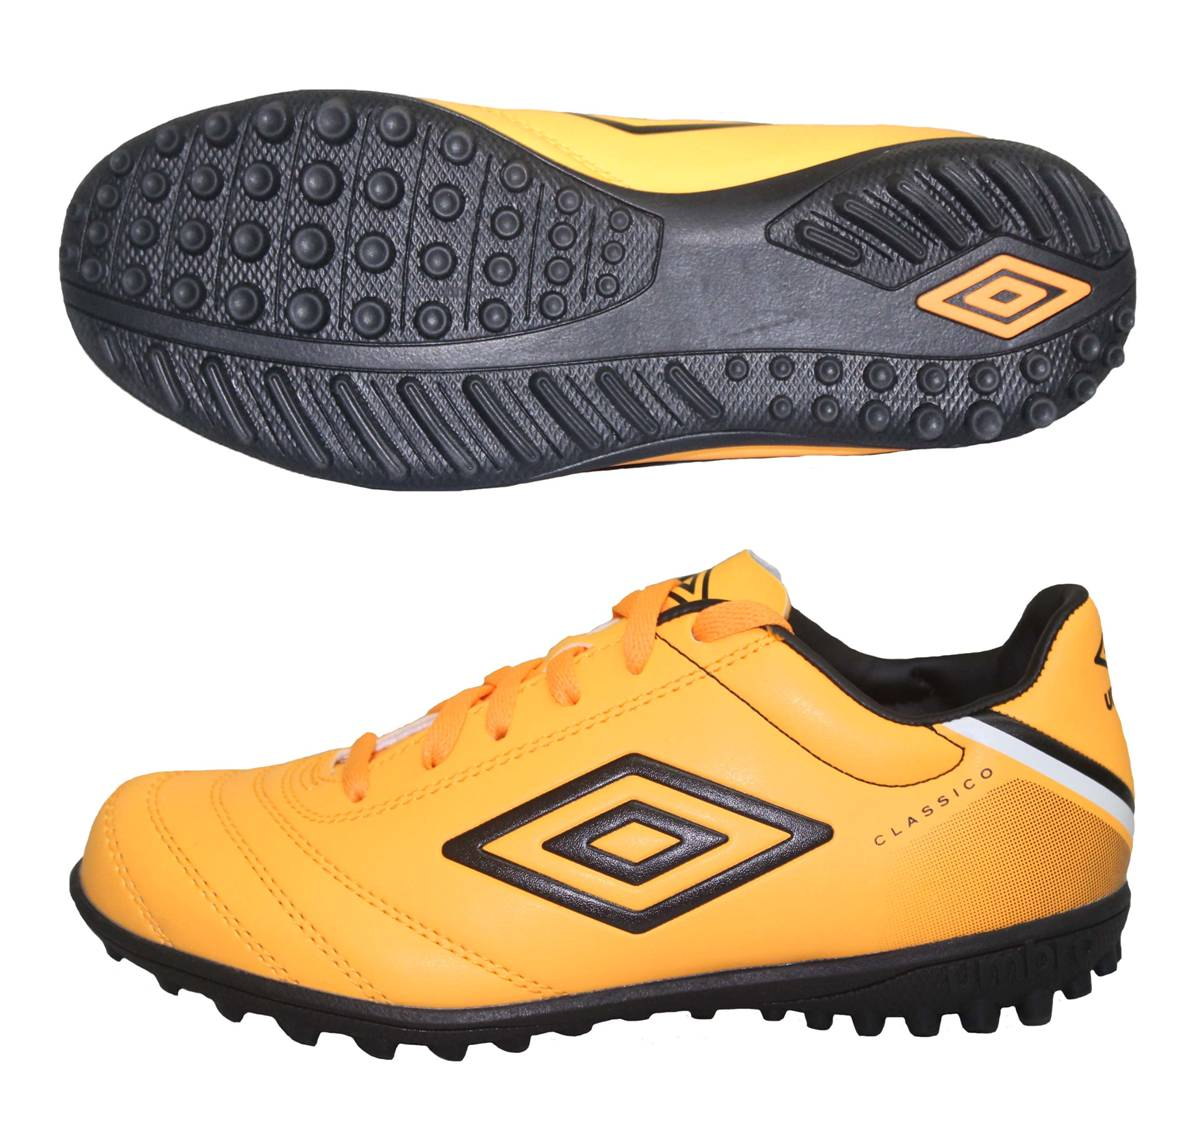 d42cda3de Umbro Classico V Turf Football Boots | Sports and Games Ltd.